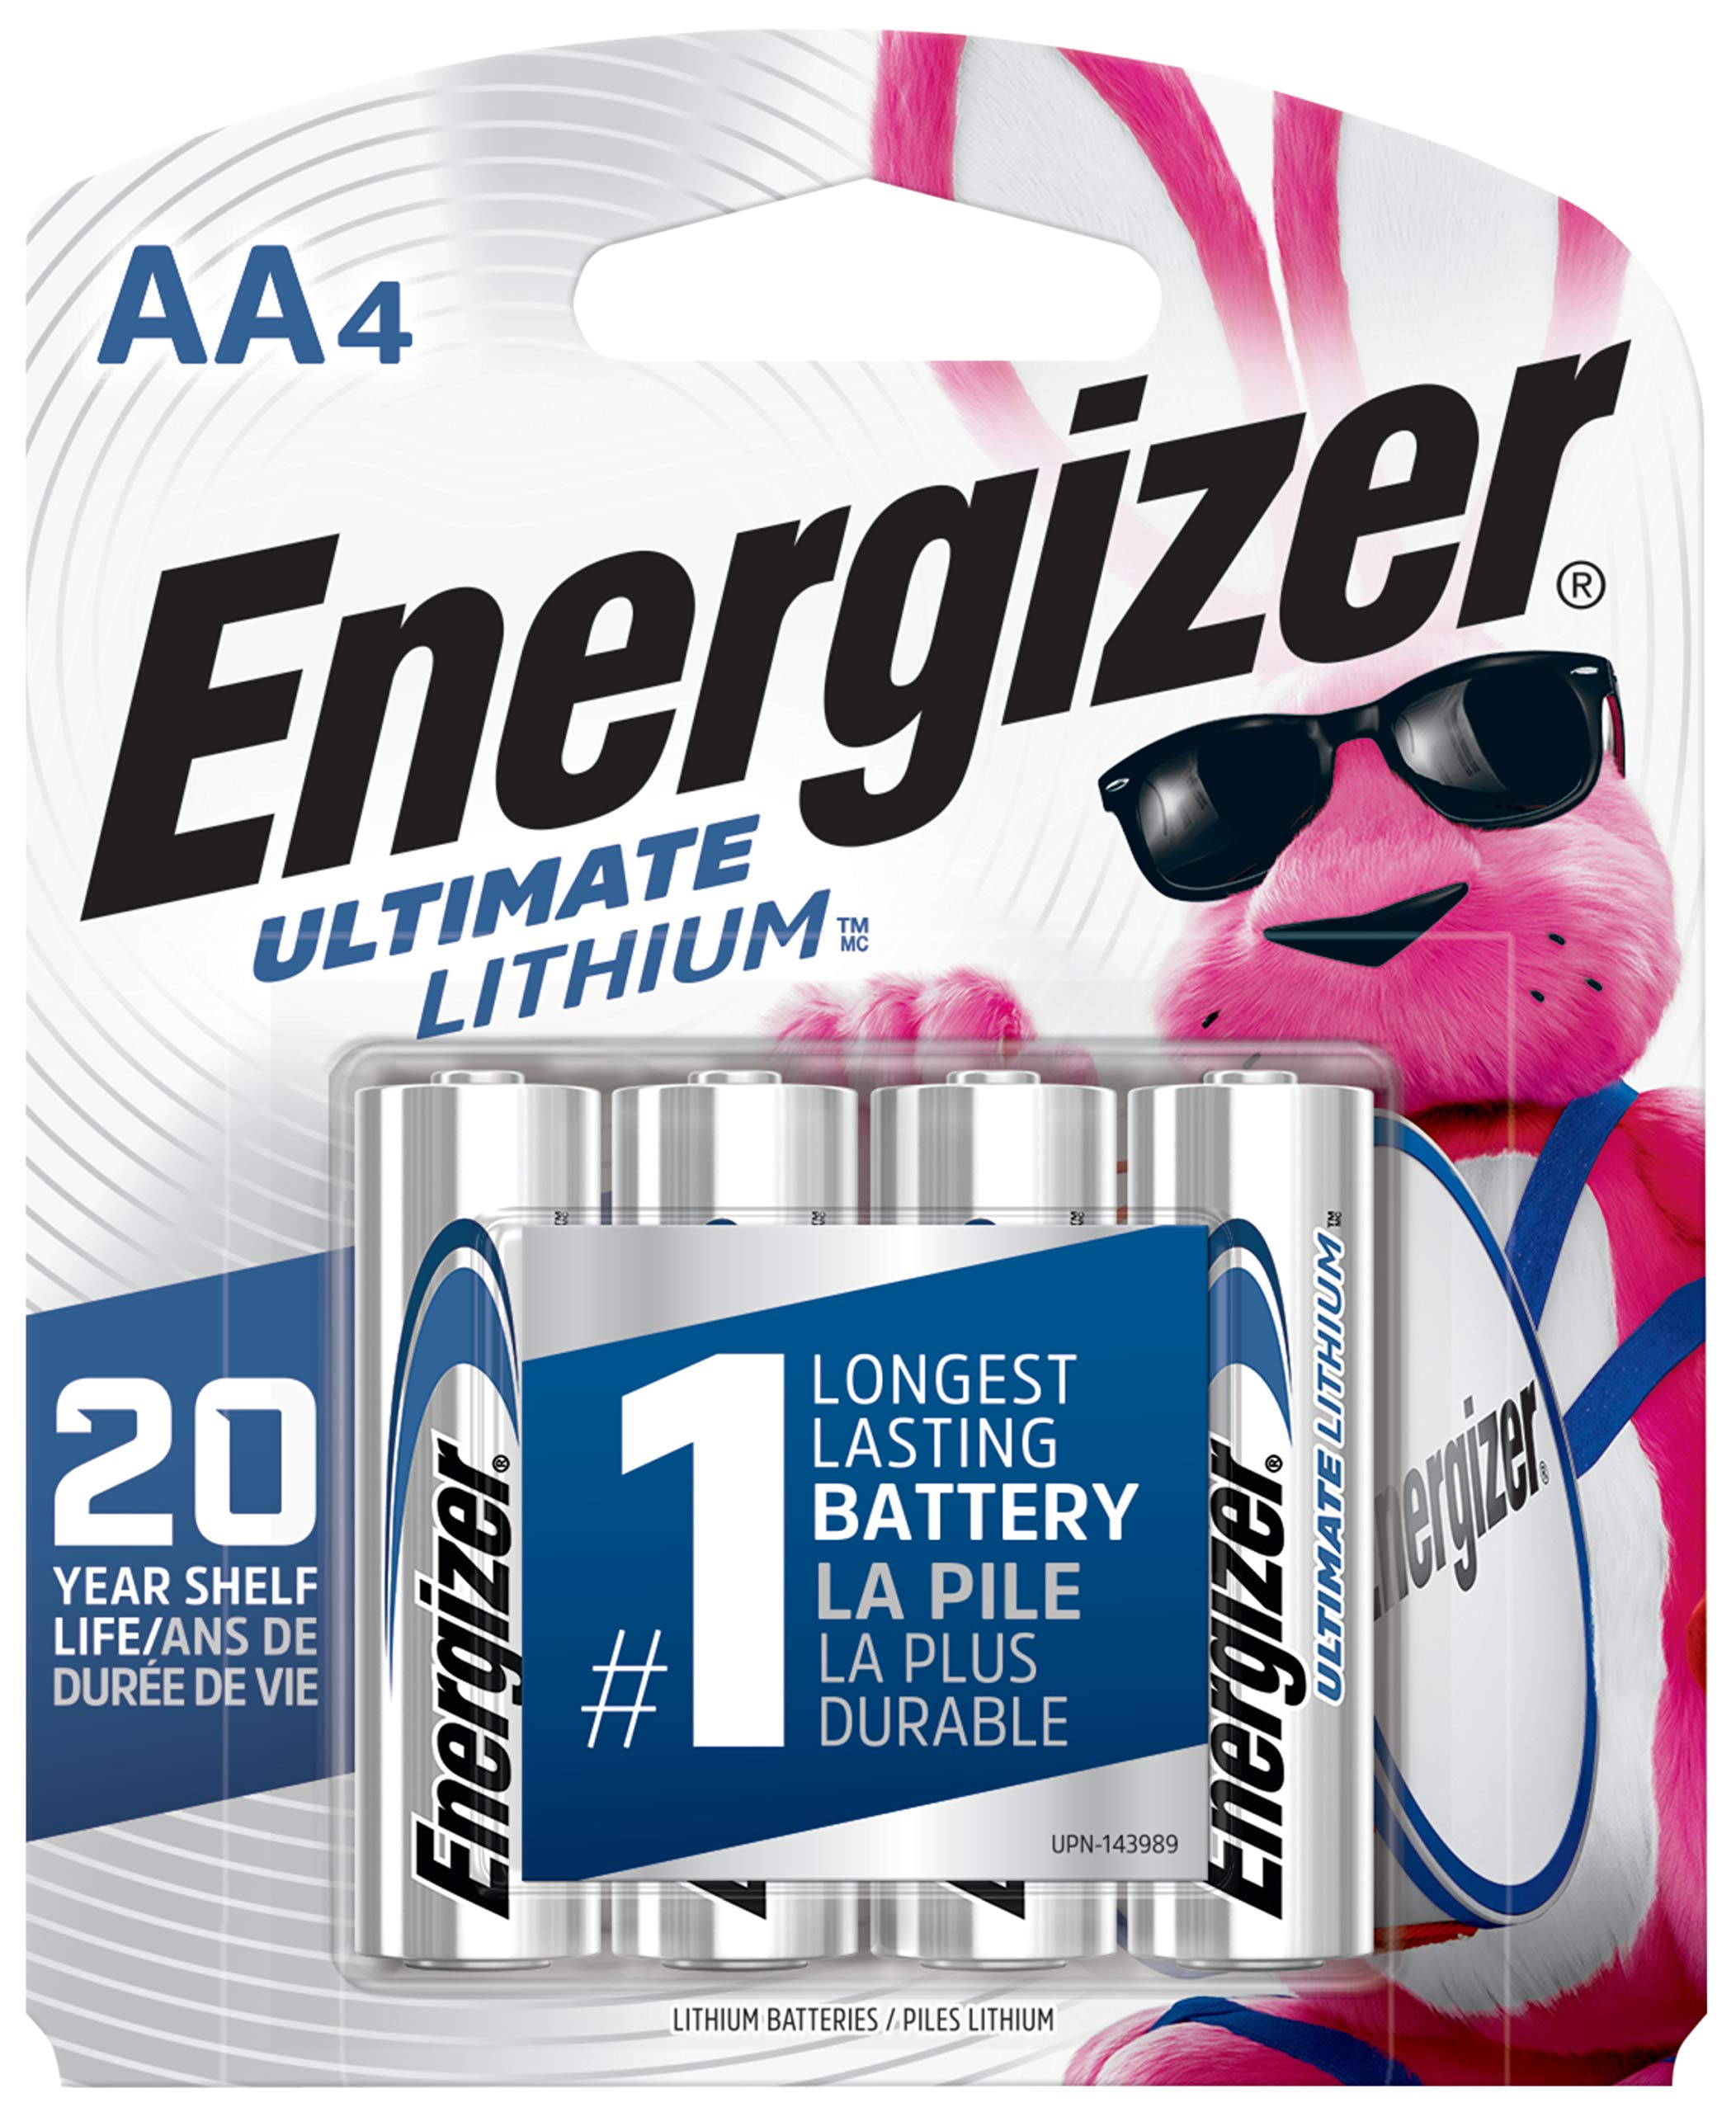 Energizer Ultimate Lithium AA Batteries, World's Longest Lasting Battery for High-Tech Devices (4 Each), Black (EVEL91BP4)